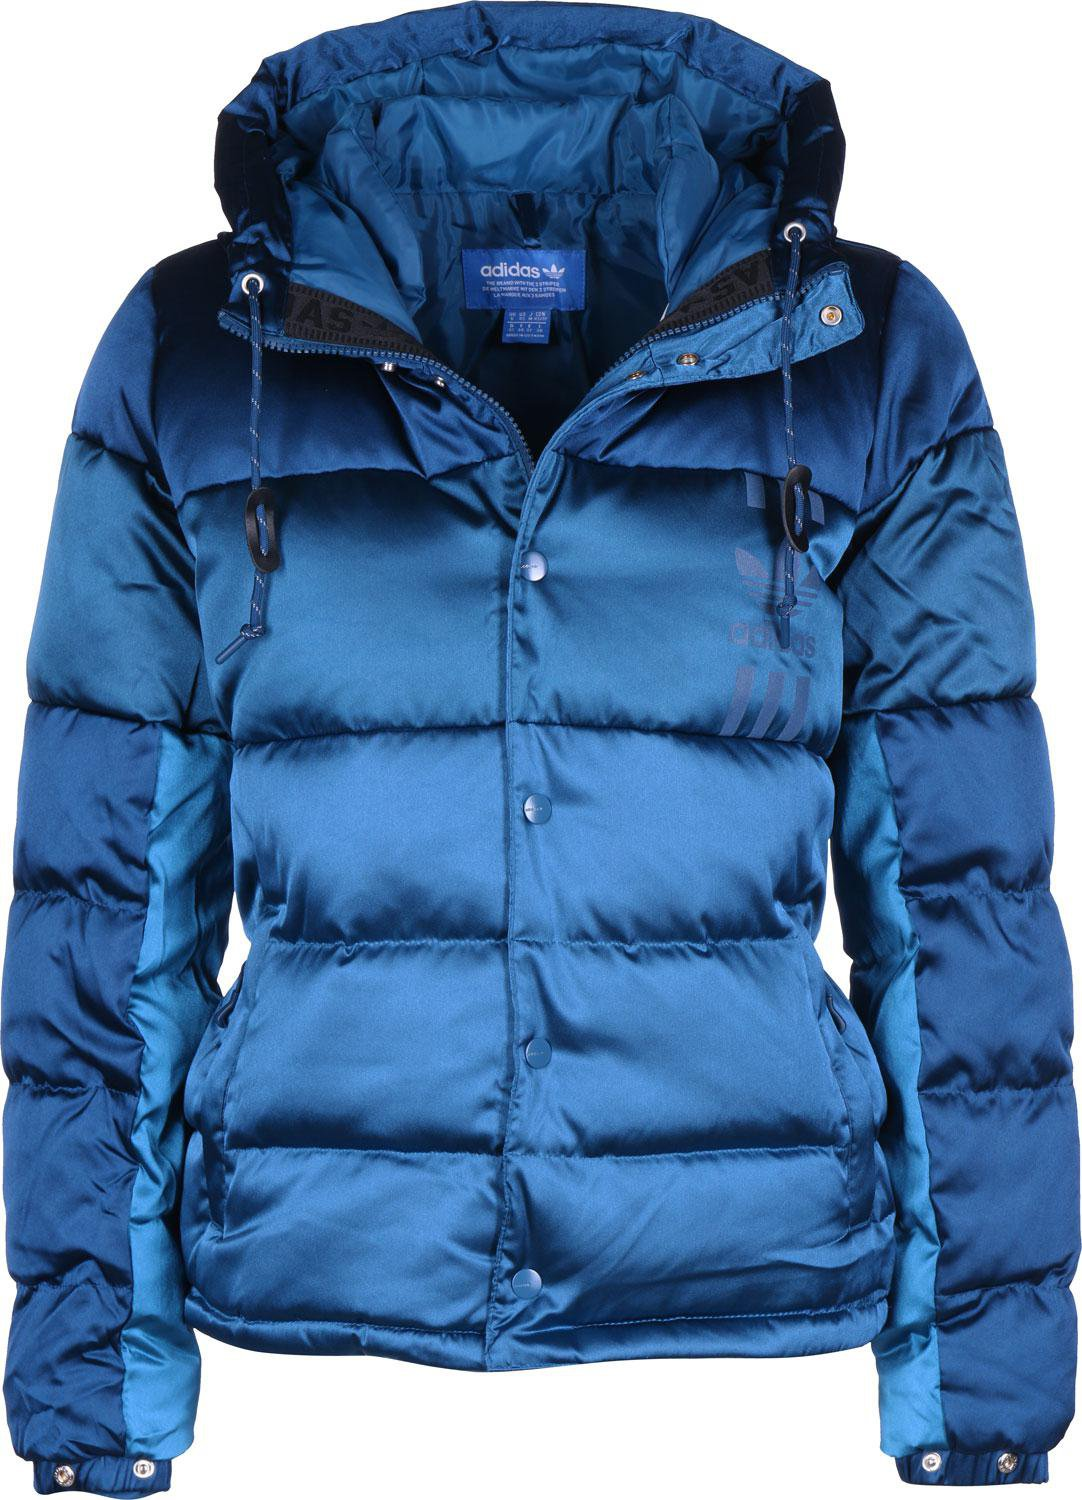 reputable site df6c6 d103e Adidas Daunenjacke Damen